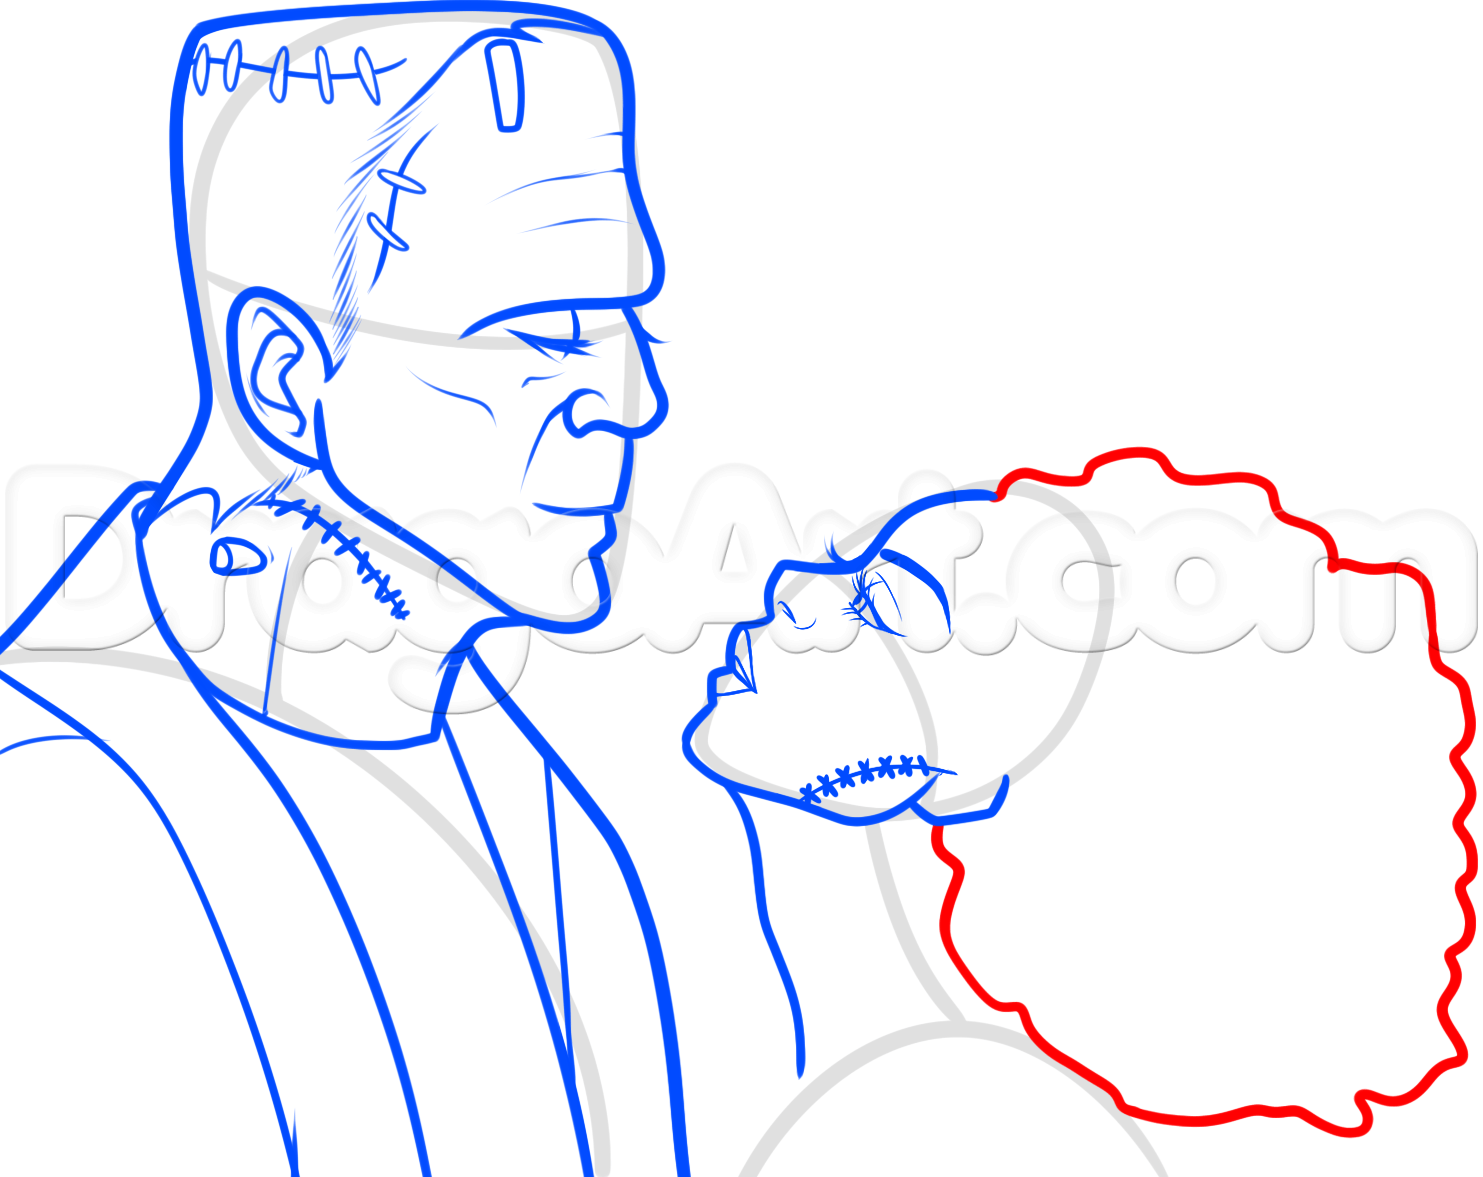 1483x1177 How To Draw Frankenstein And His Bride Step 9 1 000000176161 5.png